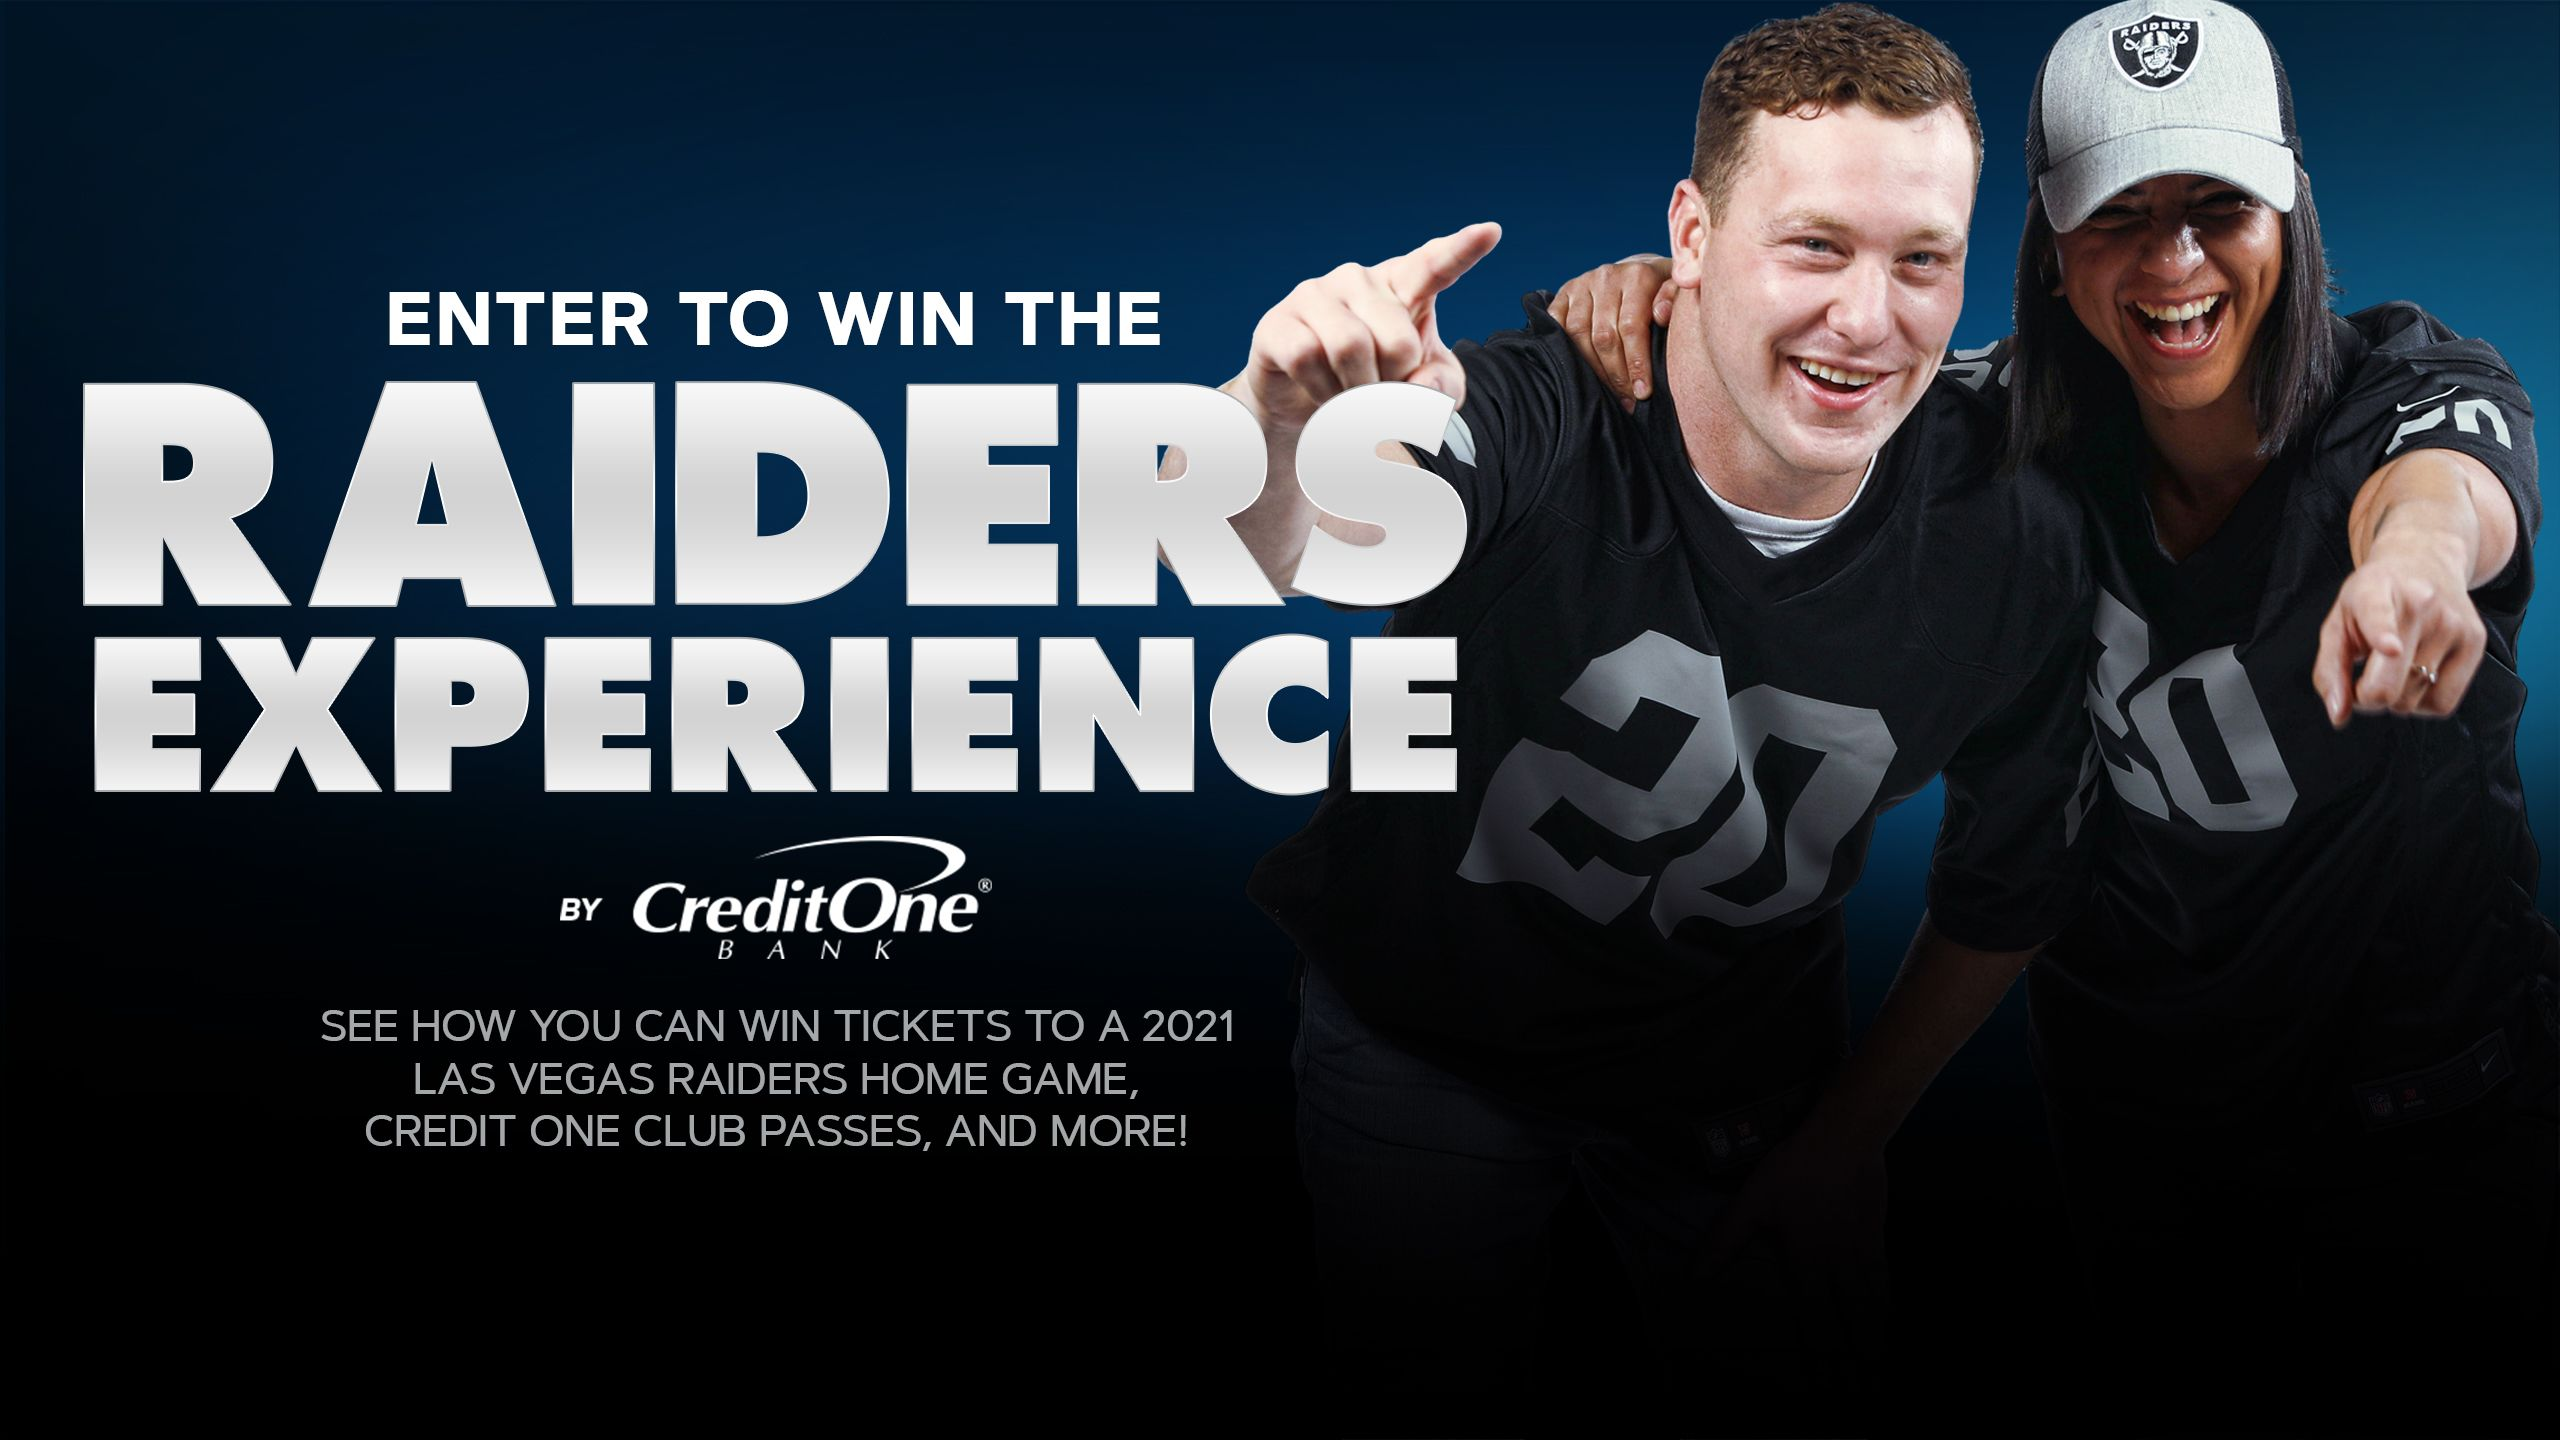 Raiders Experience by Credit One Bank